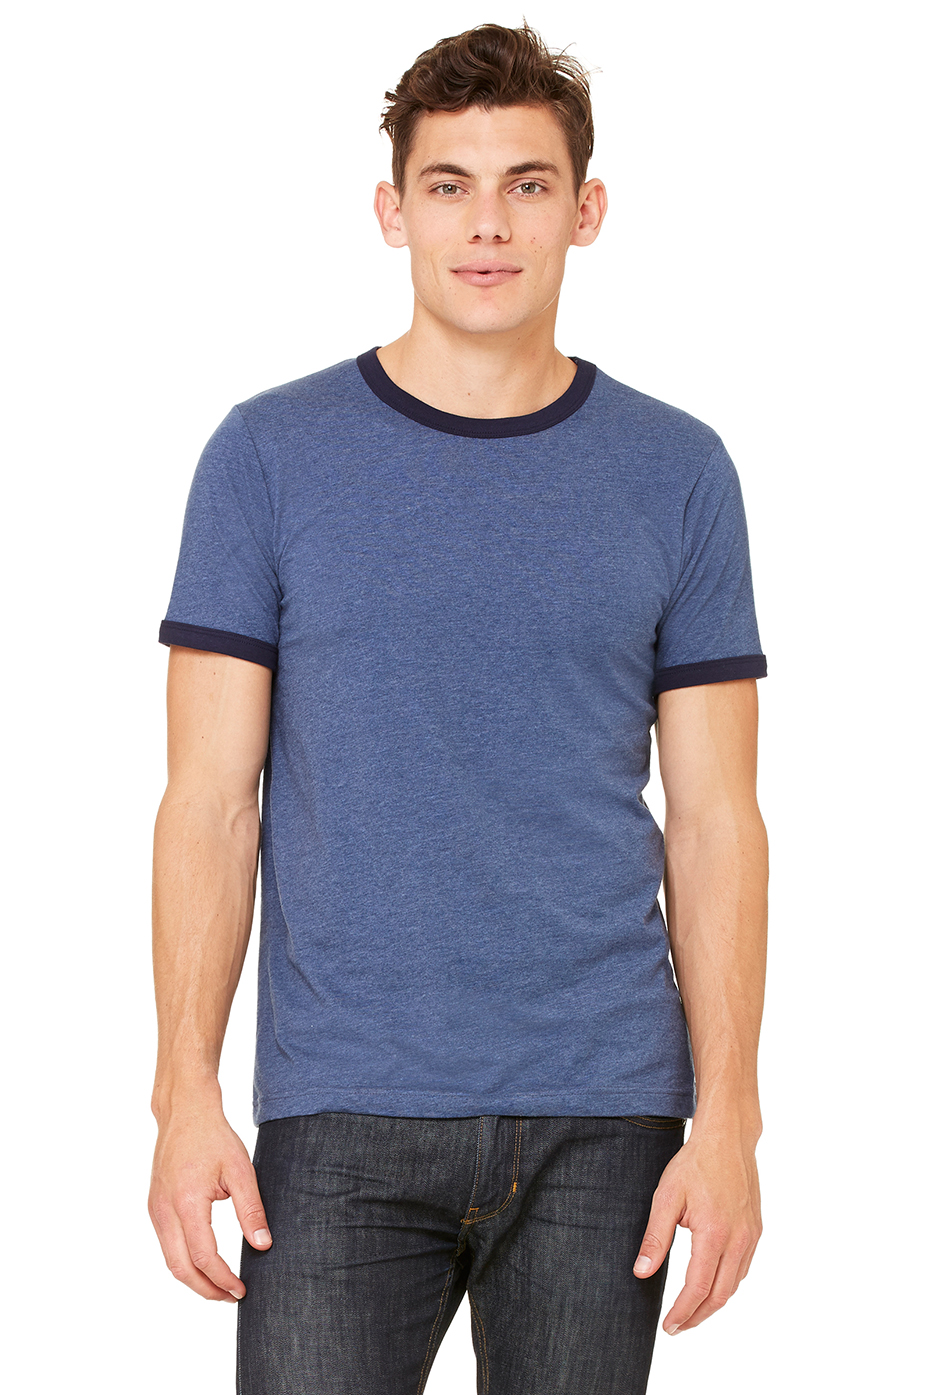 Find great deals on eBay for mens ringer tees. Shop with confidence.